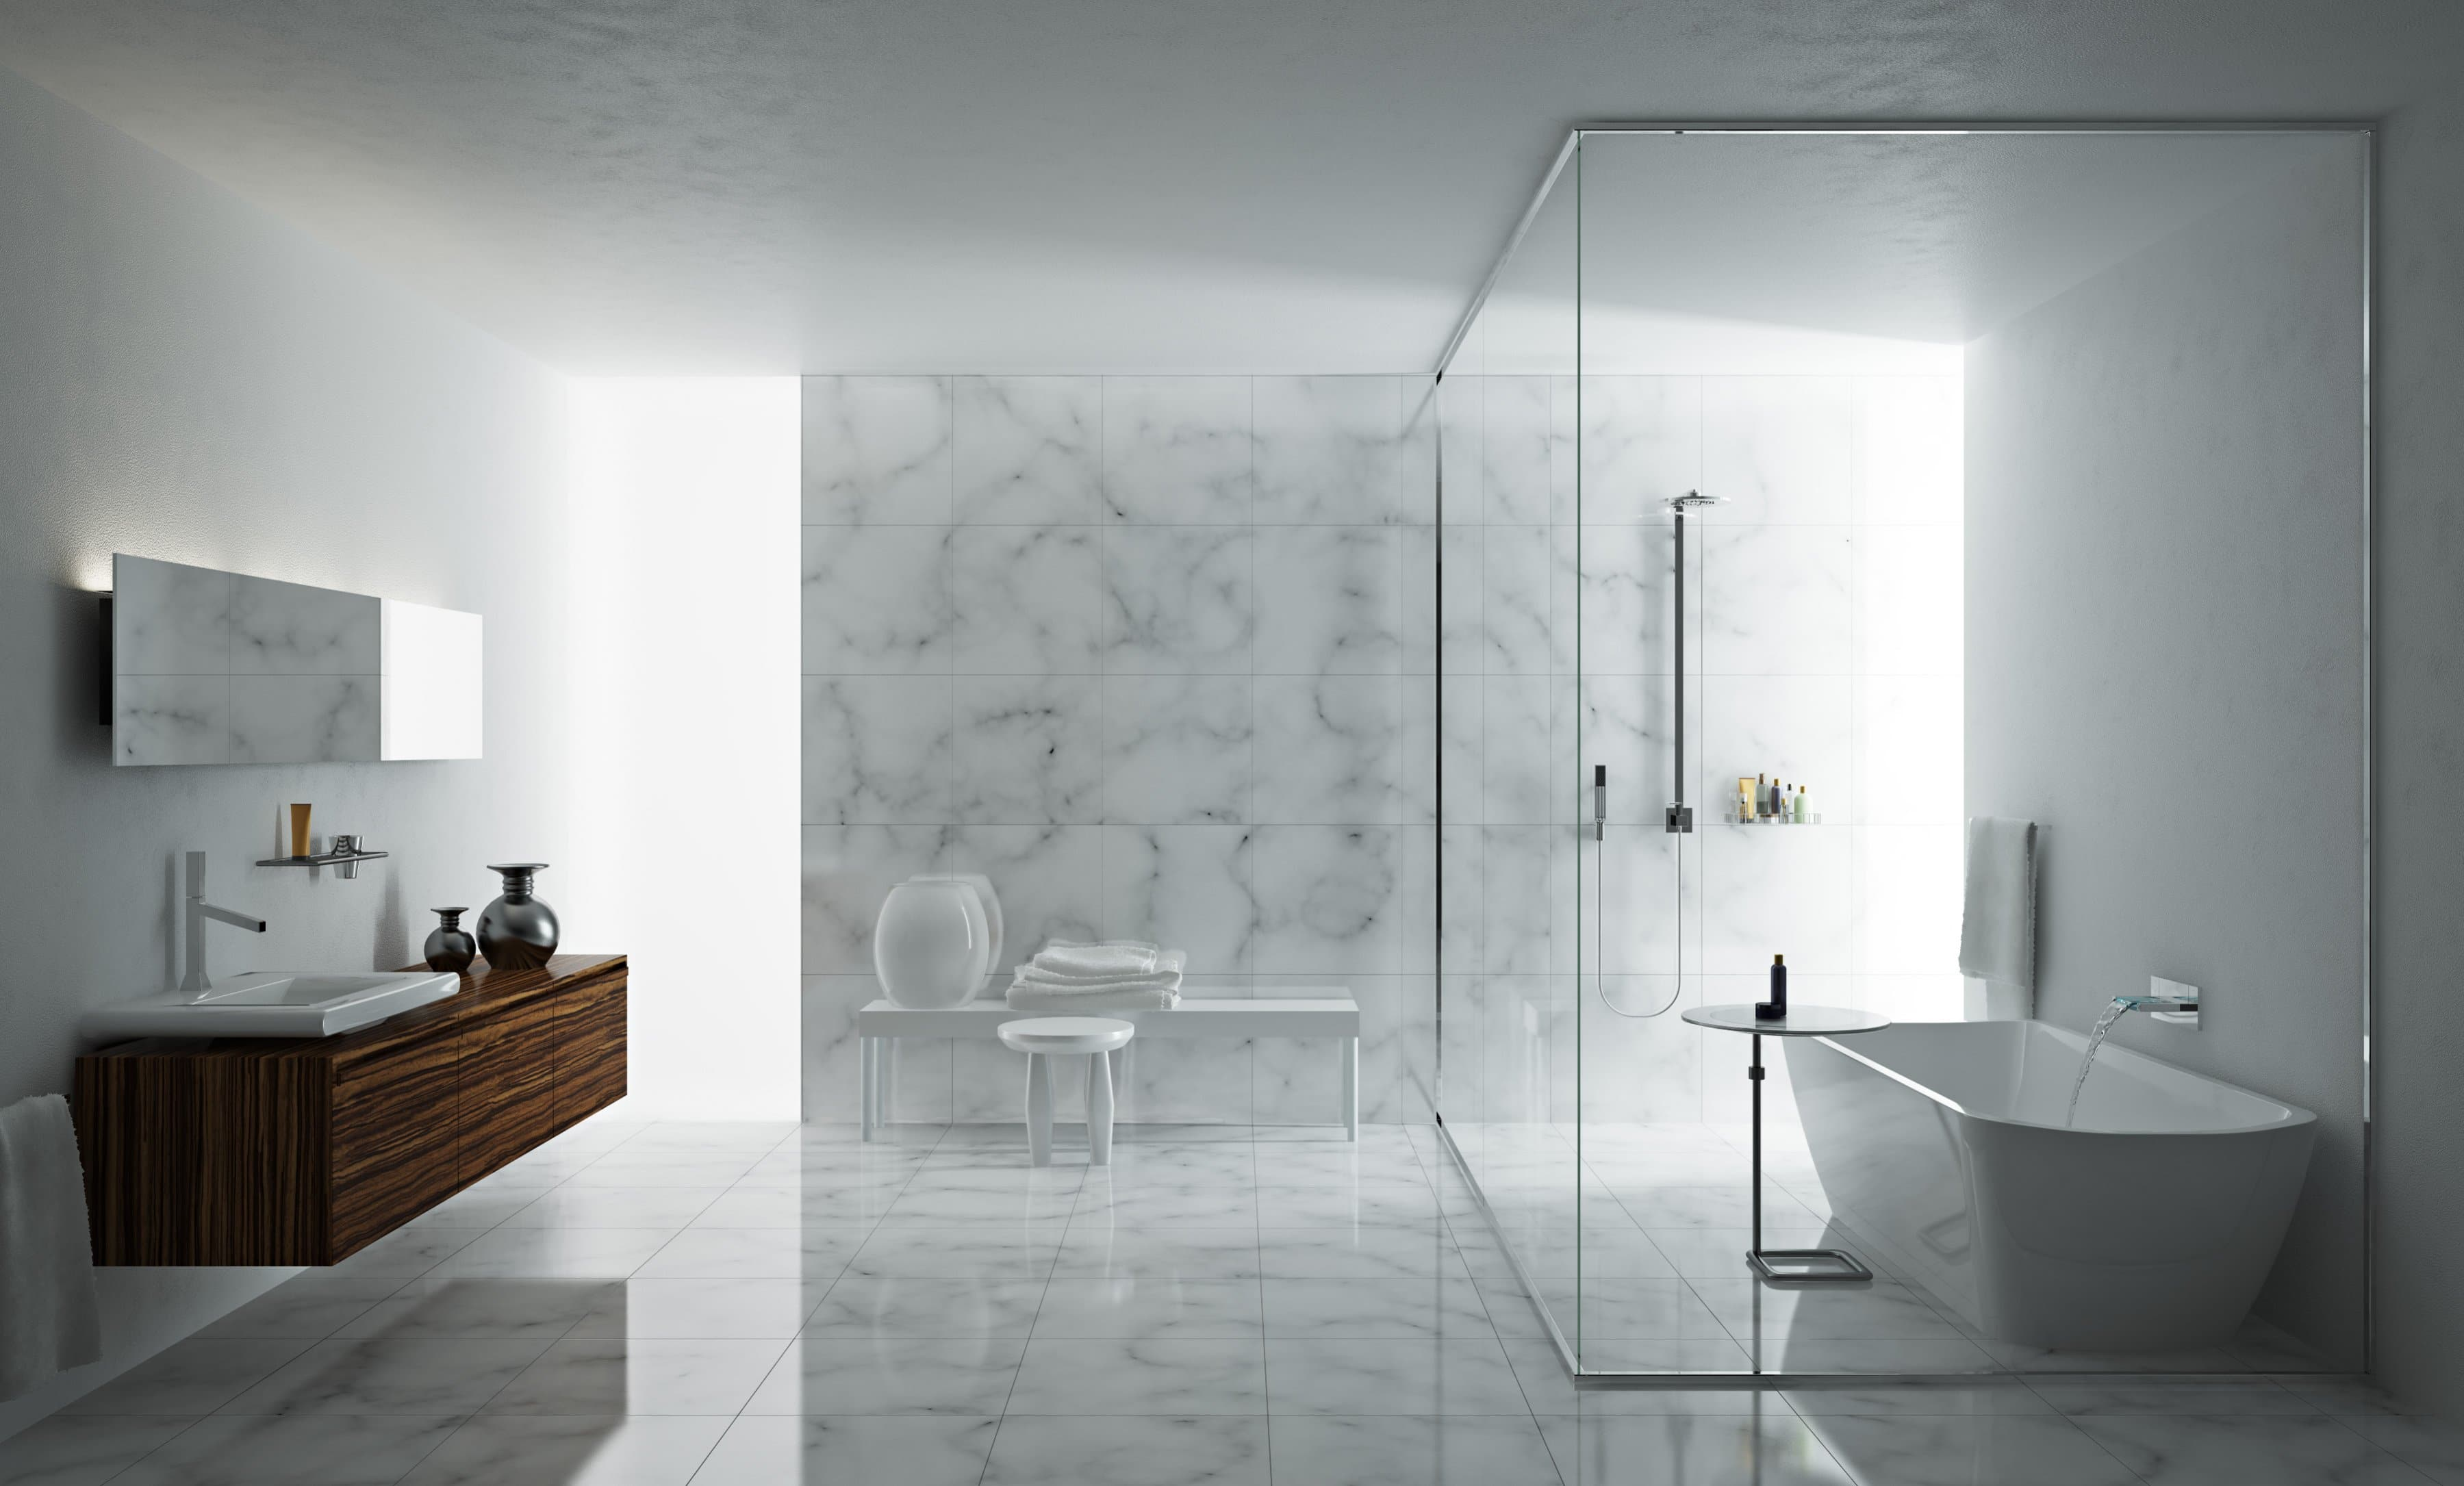 Source : https://valiet.org/addfa9ead29cb931-bathroom-designs-with-showers.html